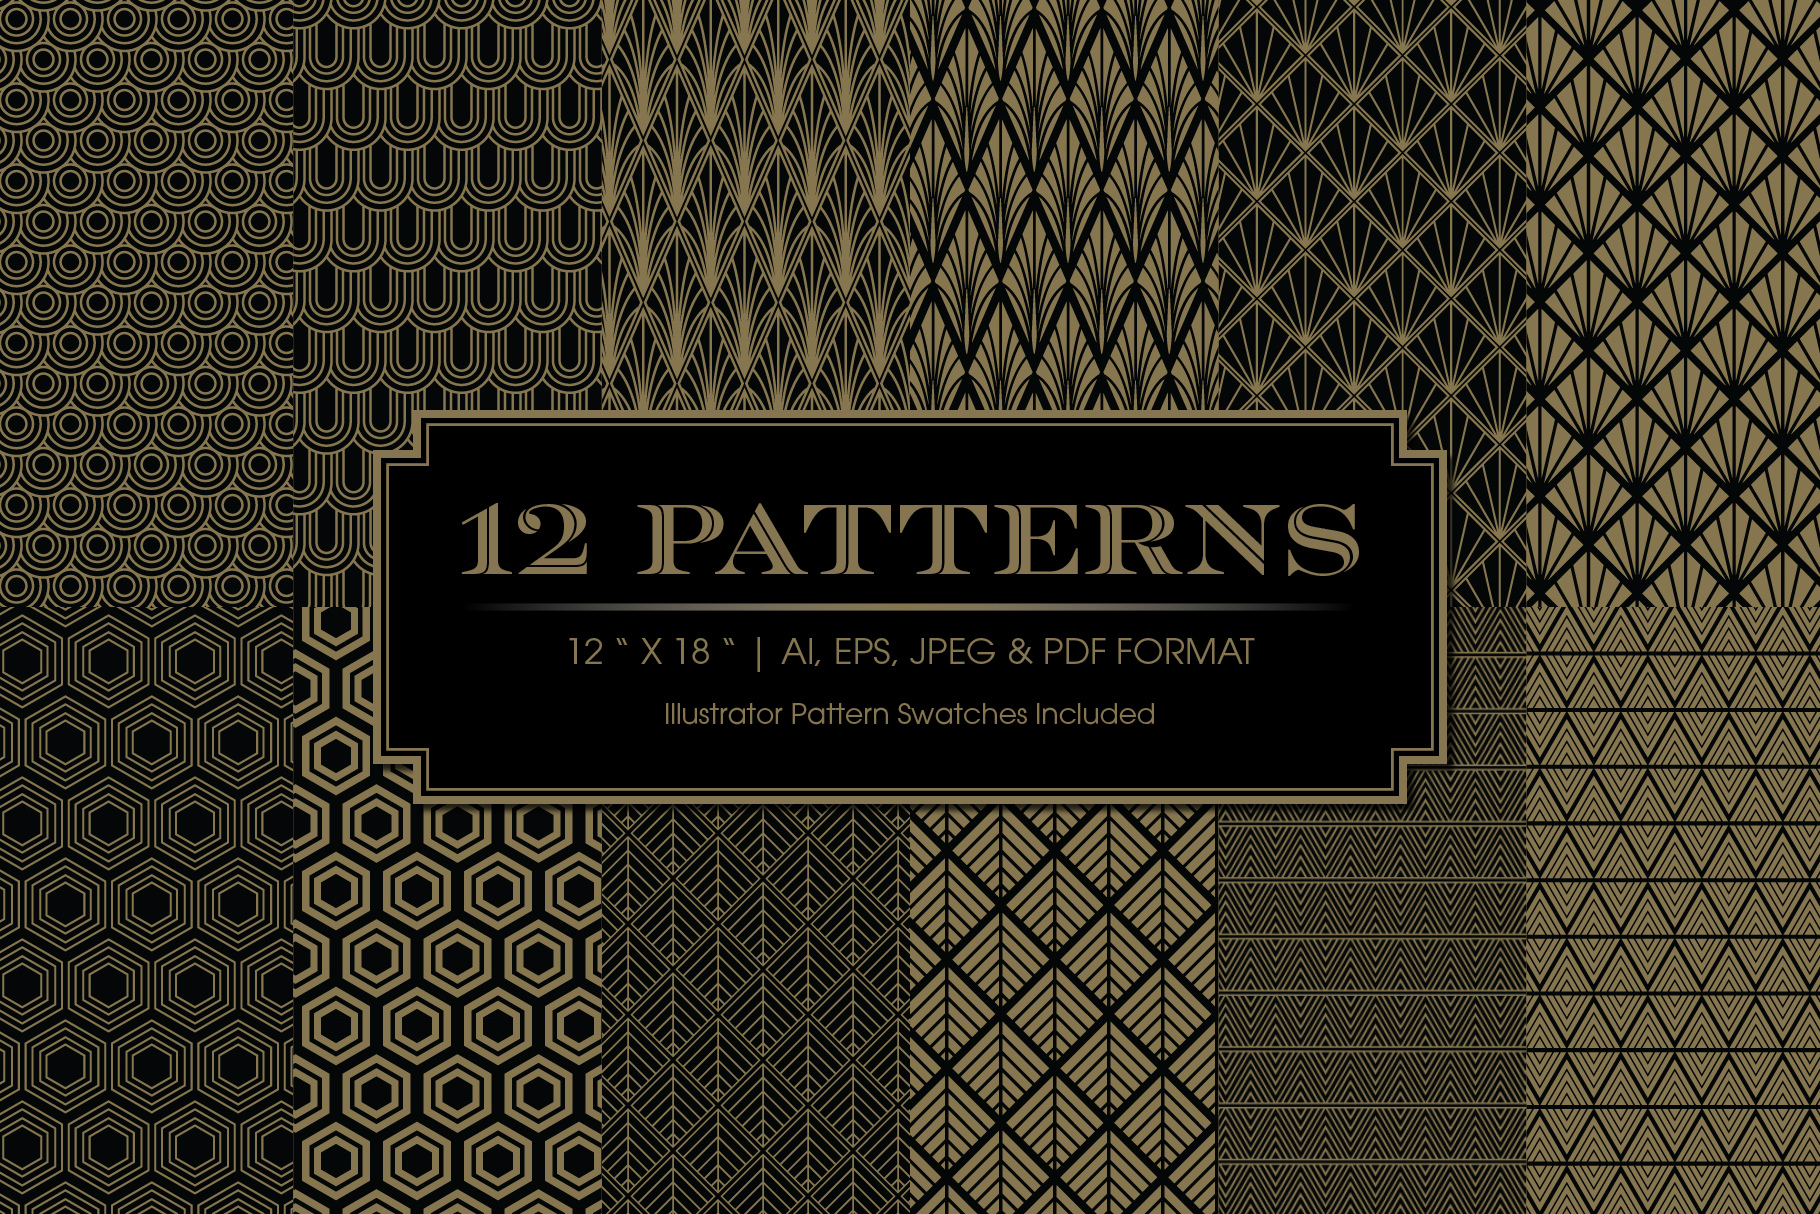 Art Deco Invitations and Patterns